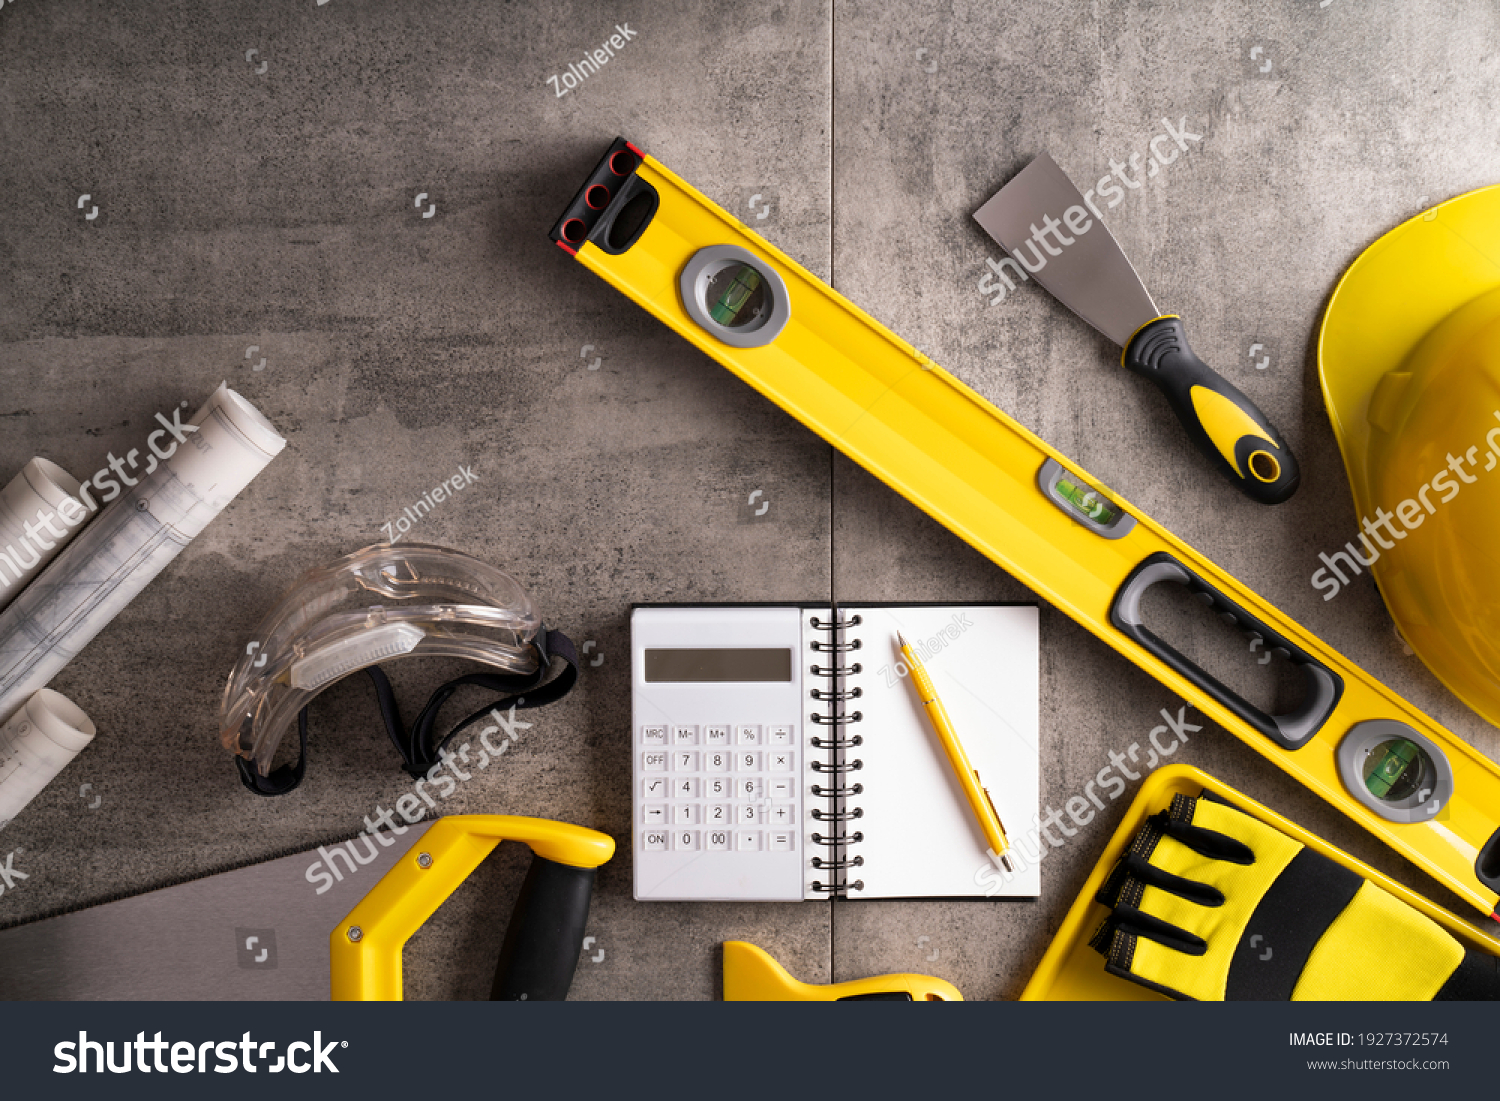 Yellow and black contractor equipment on gray tiles. #1927372574